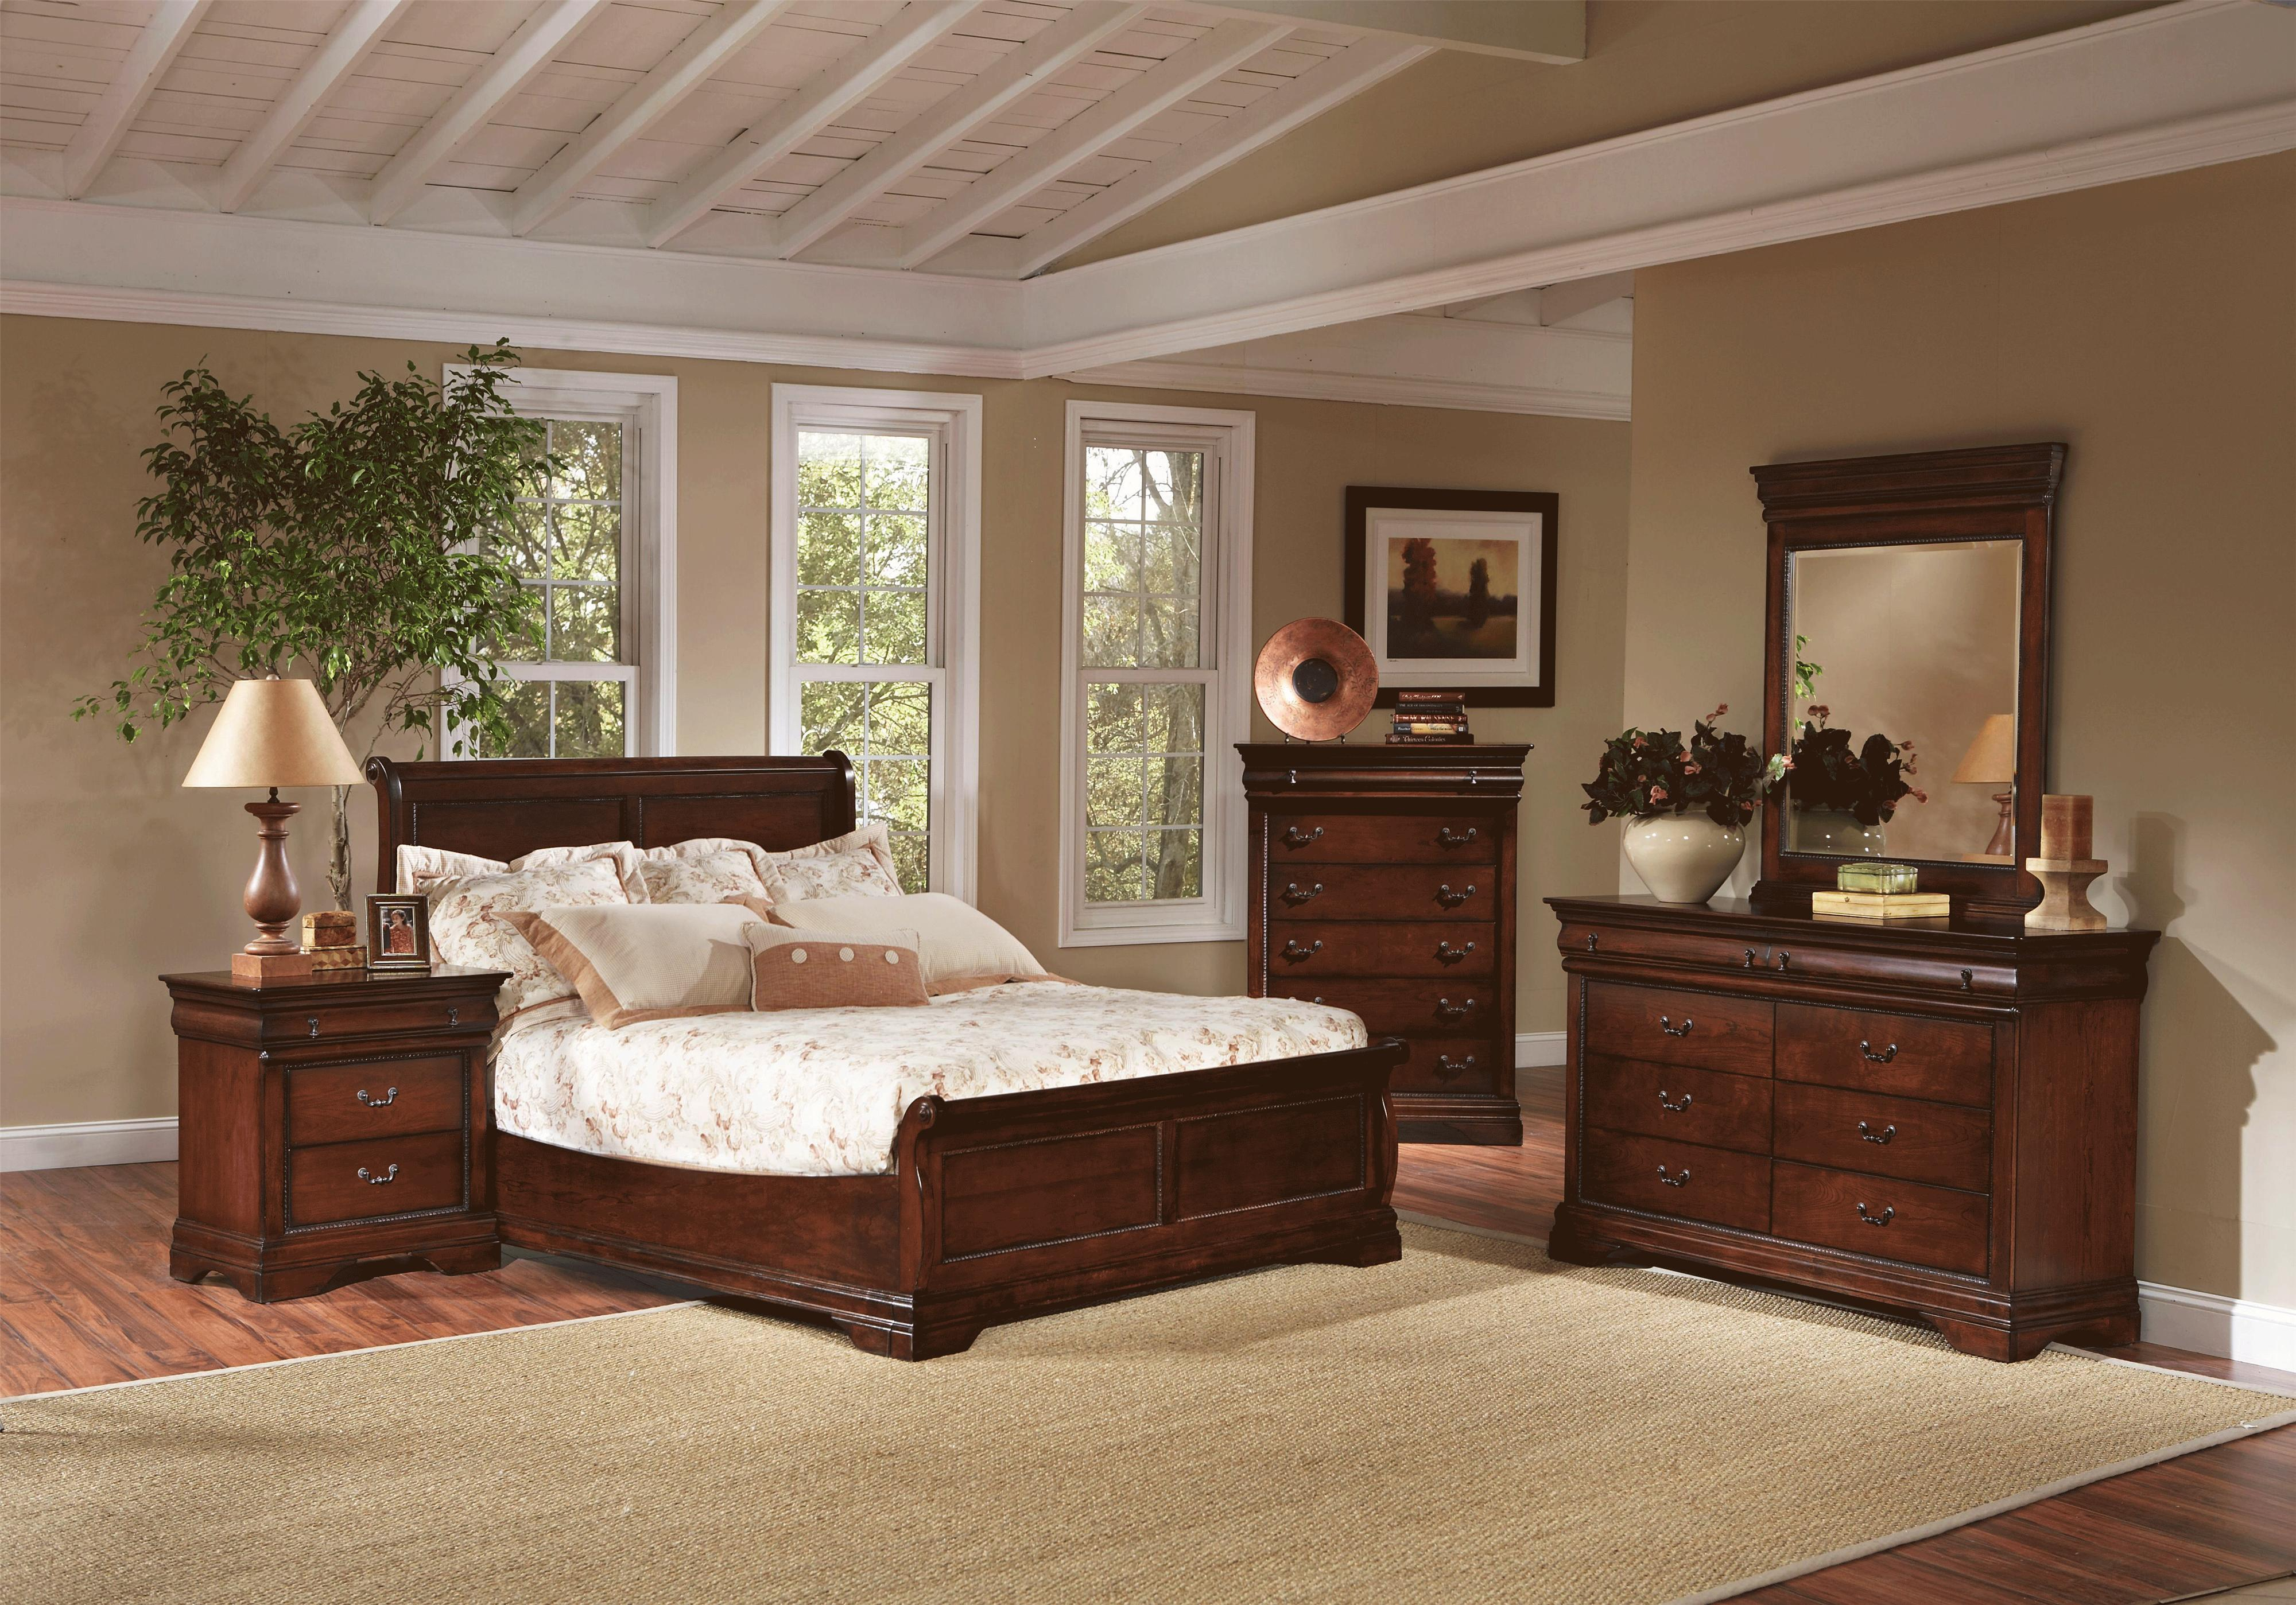 Largo Bordeaux Traditional 3 Drawer Nightstand   Zak s Fine Furniture   Night  Stand Tri Cities   Johnson City and Bristol Tennessee. Largo Bordeaux Traditional 3 Drawer Nightstand   Zak s Fine